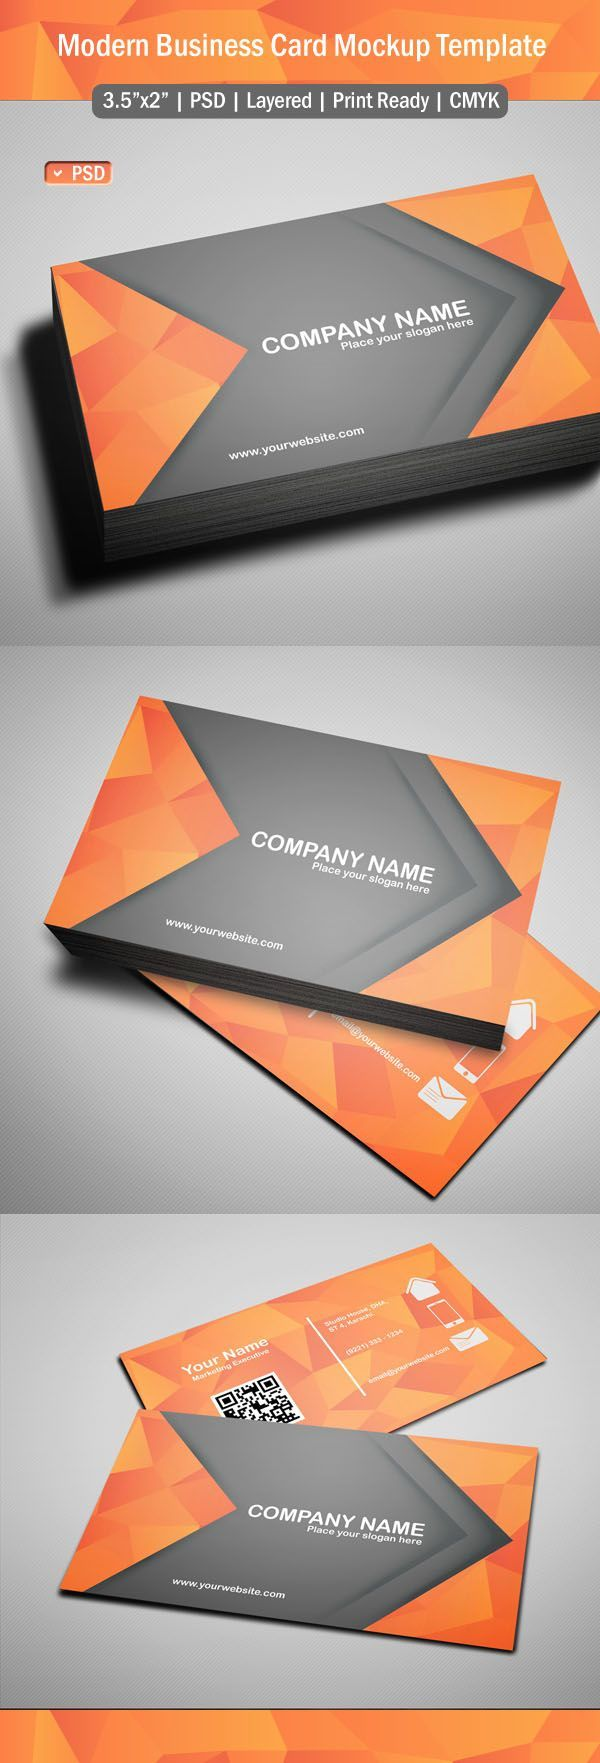 Free modern business card template psd business cards free modern business card template psd alramifo Image collections